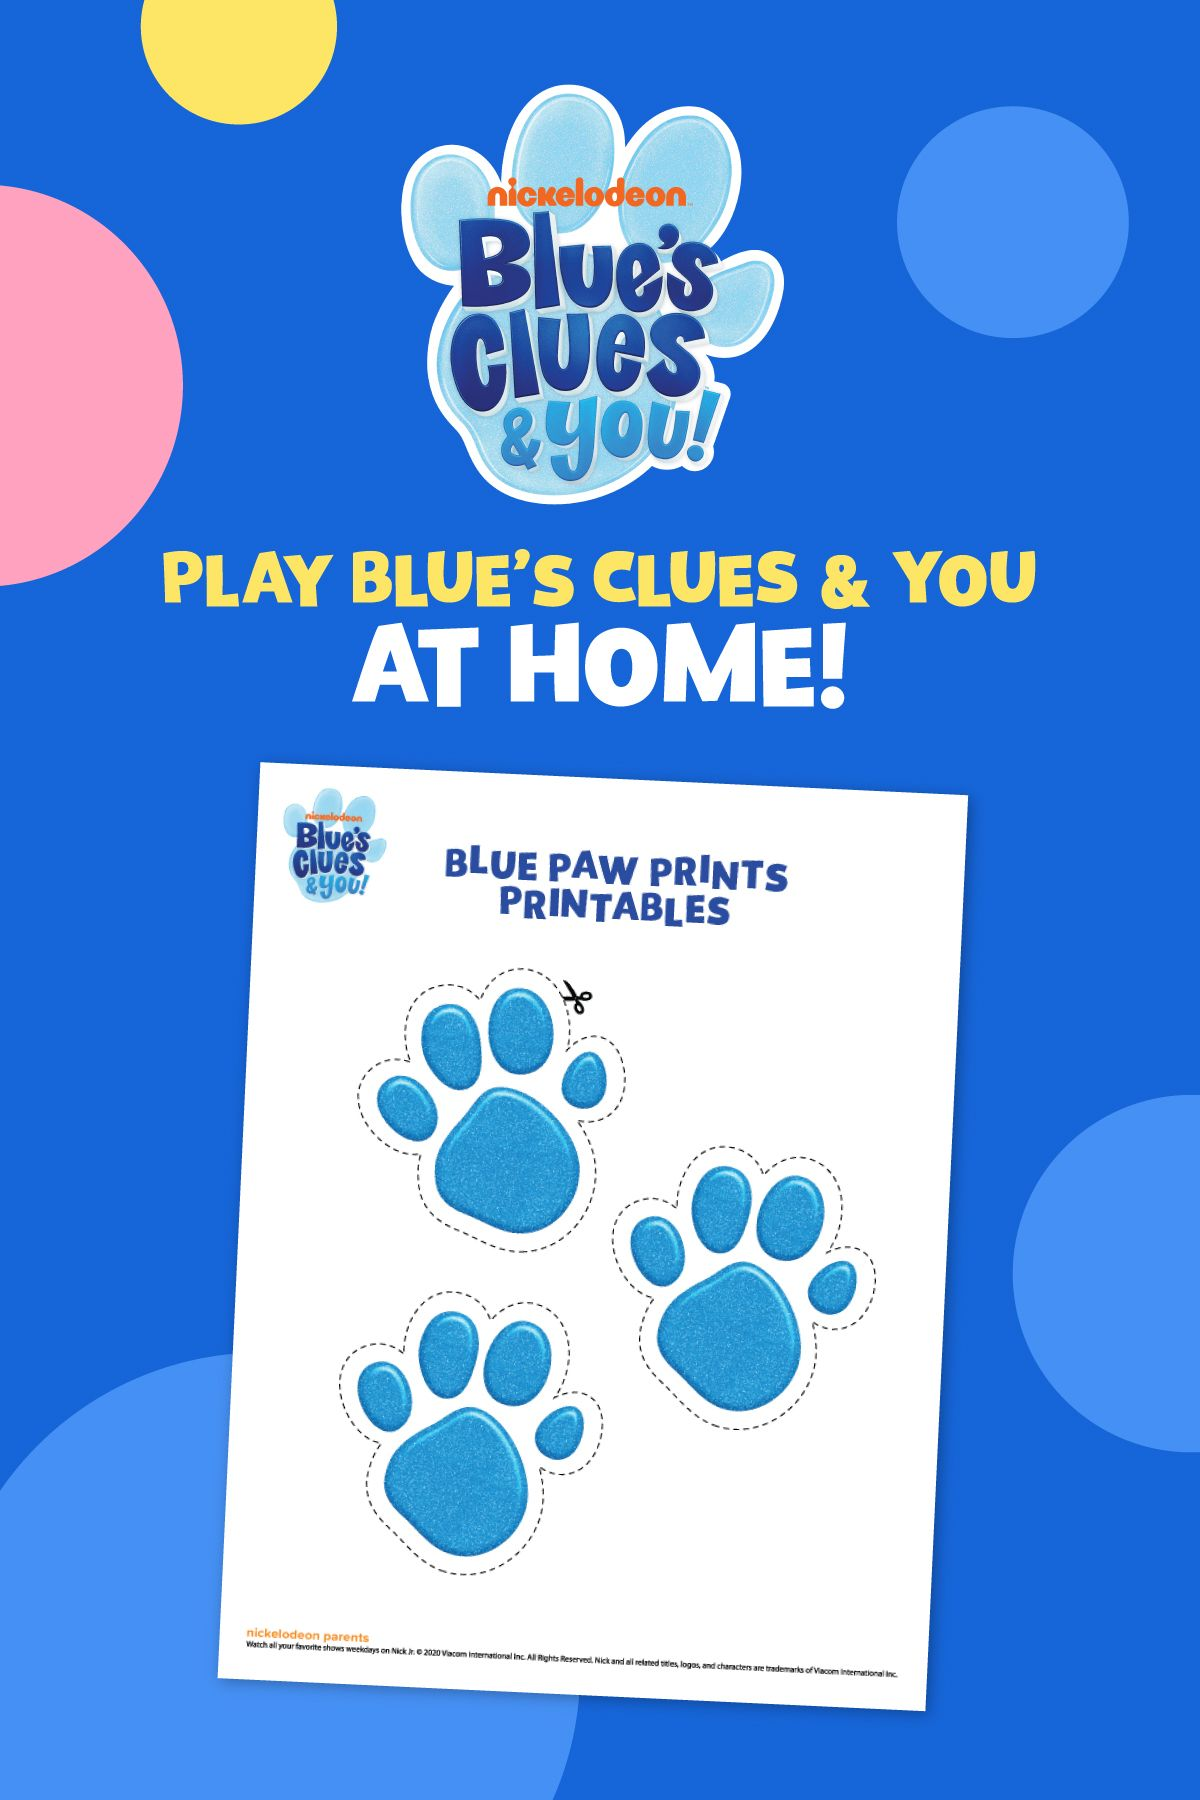 Pin on Blue's Clues & You